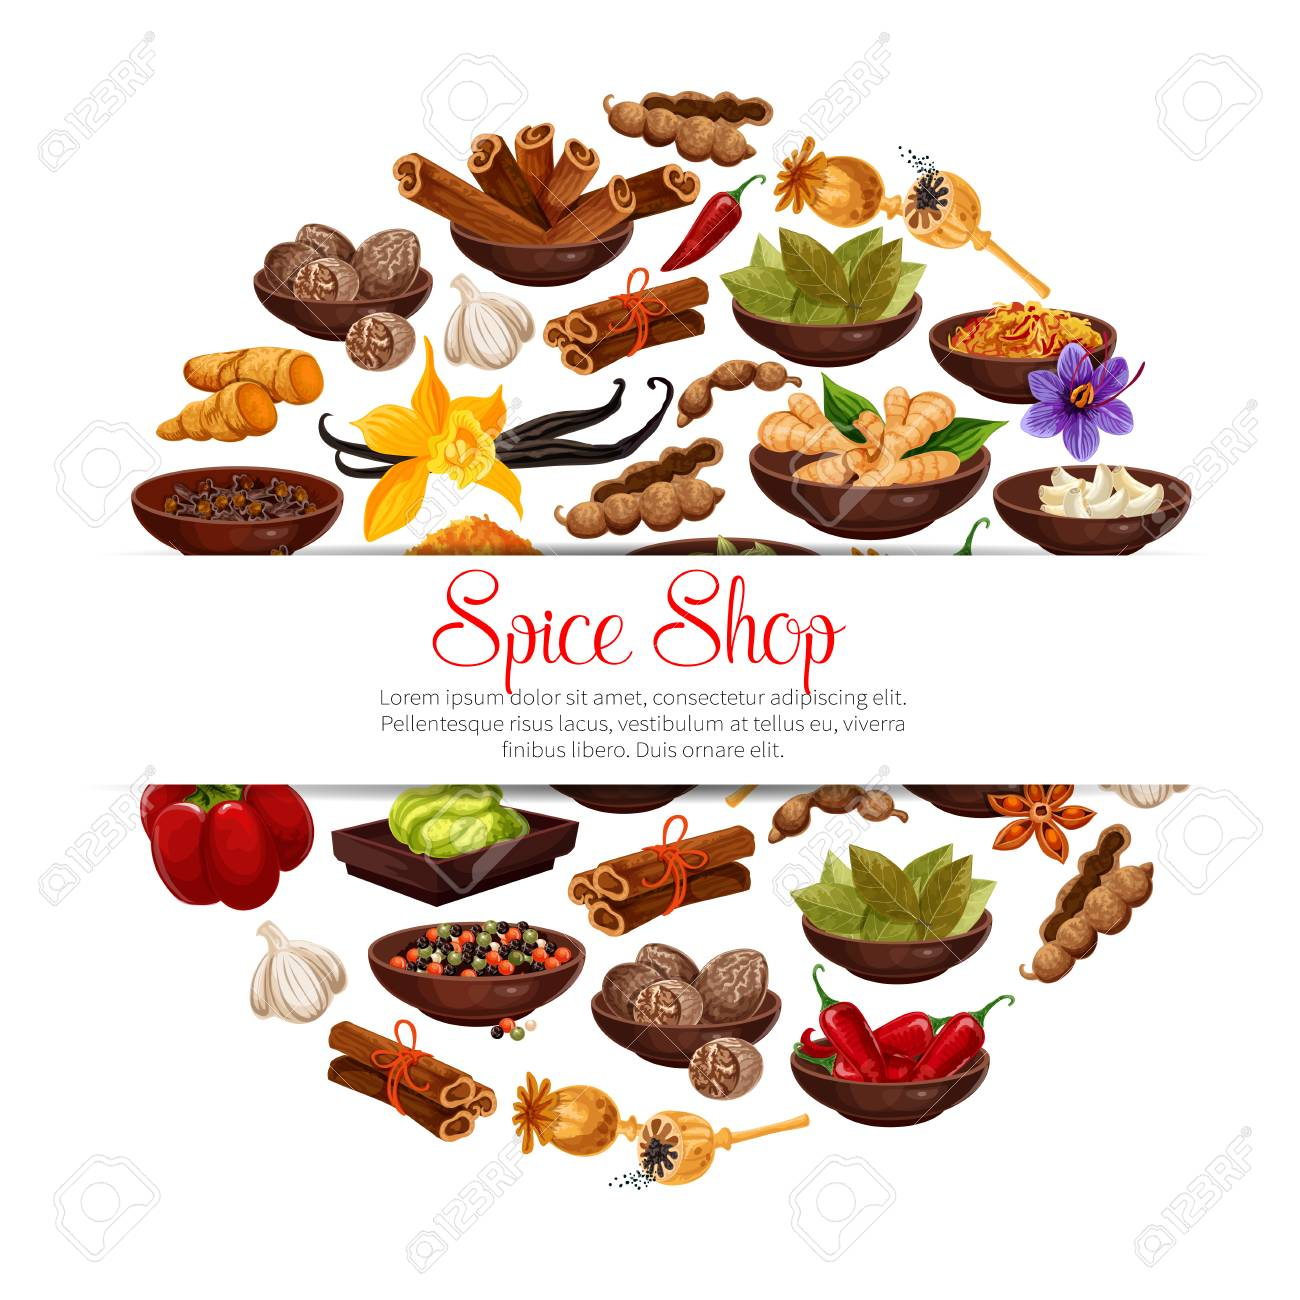 Spices and herbs in bowls poster of herbal seasonings. Vector tamarind, or vanilla and chili pepper, cinnamon and cardamom or cloves seeds and ginger, Indian curry or anise and turmeric with nutmeg - 111855240